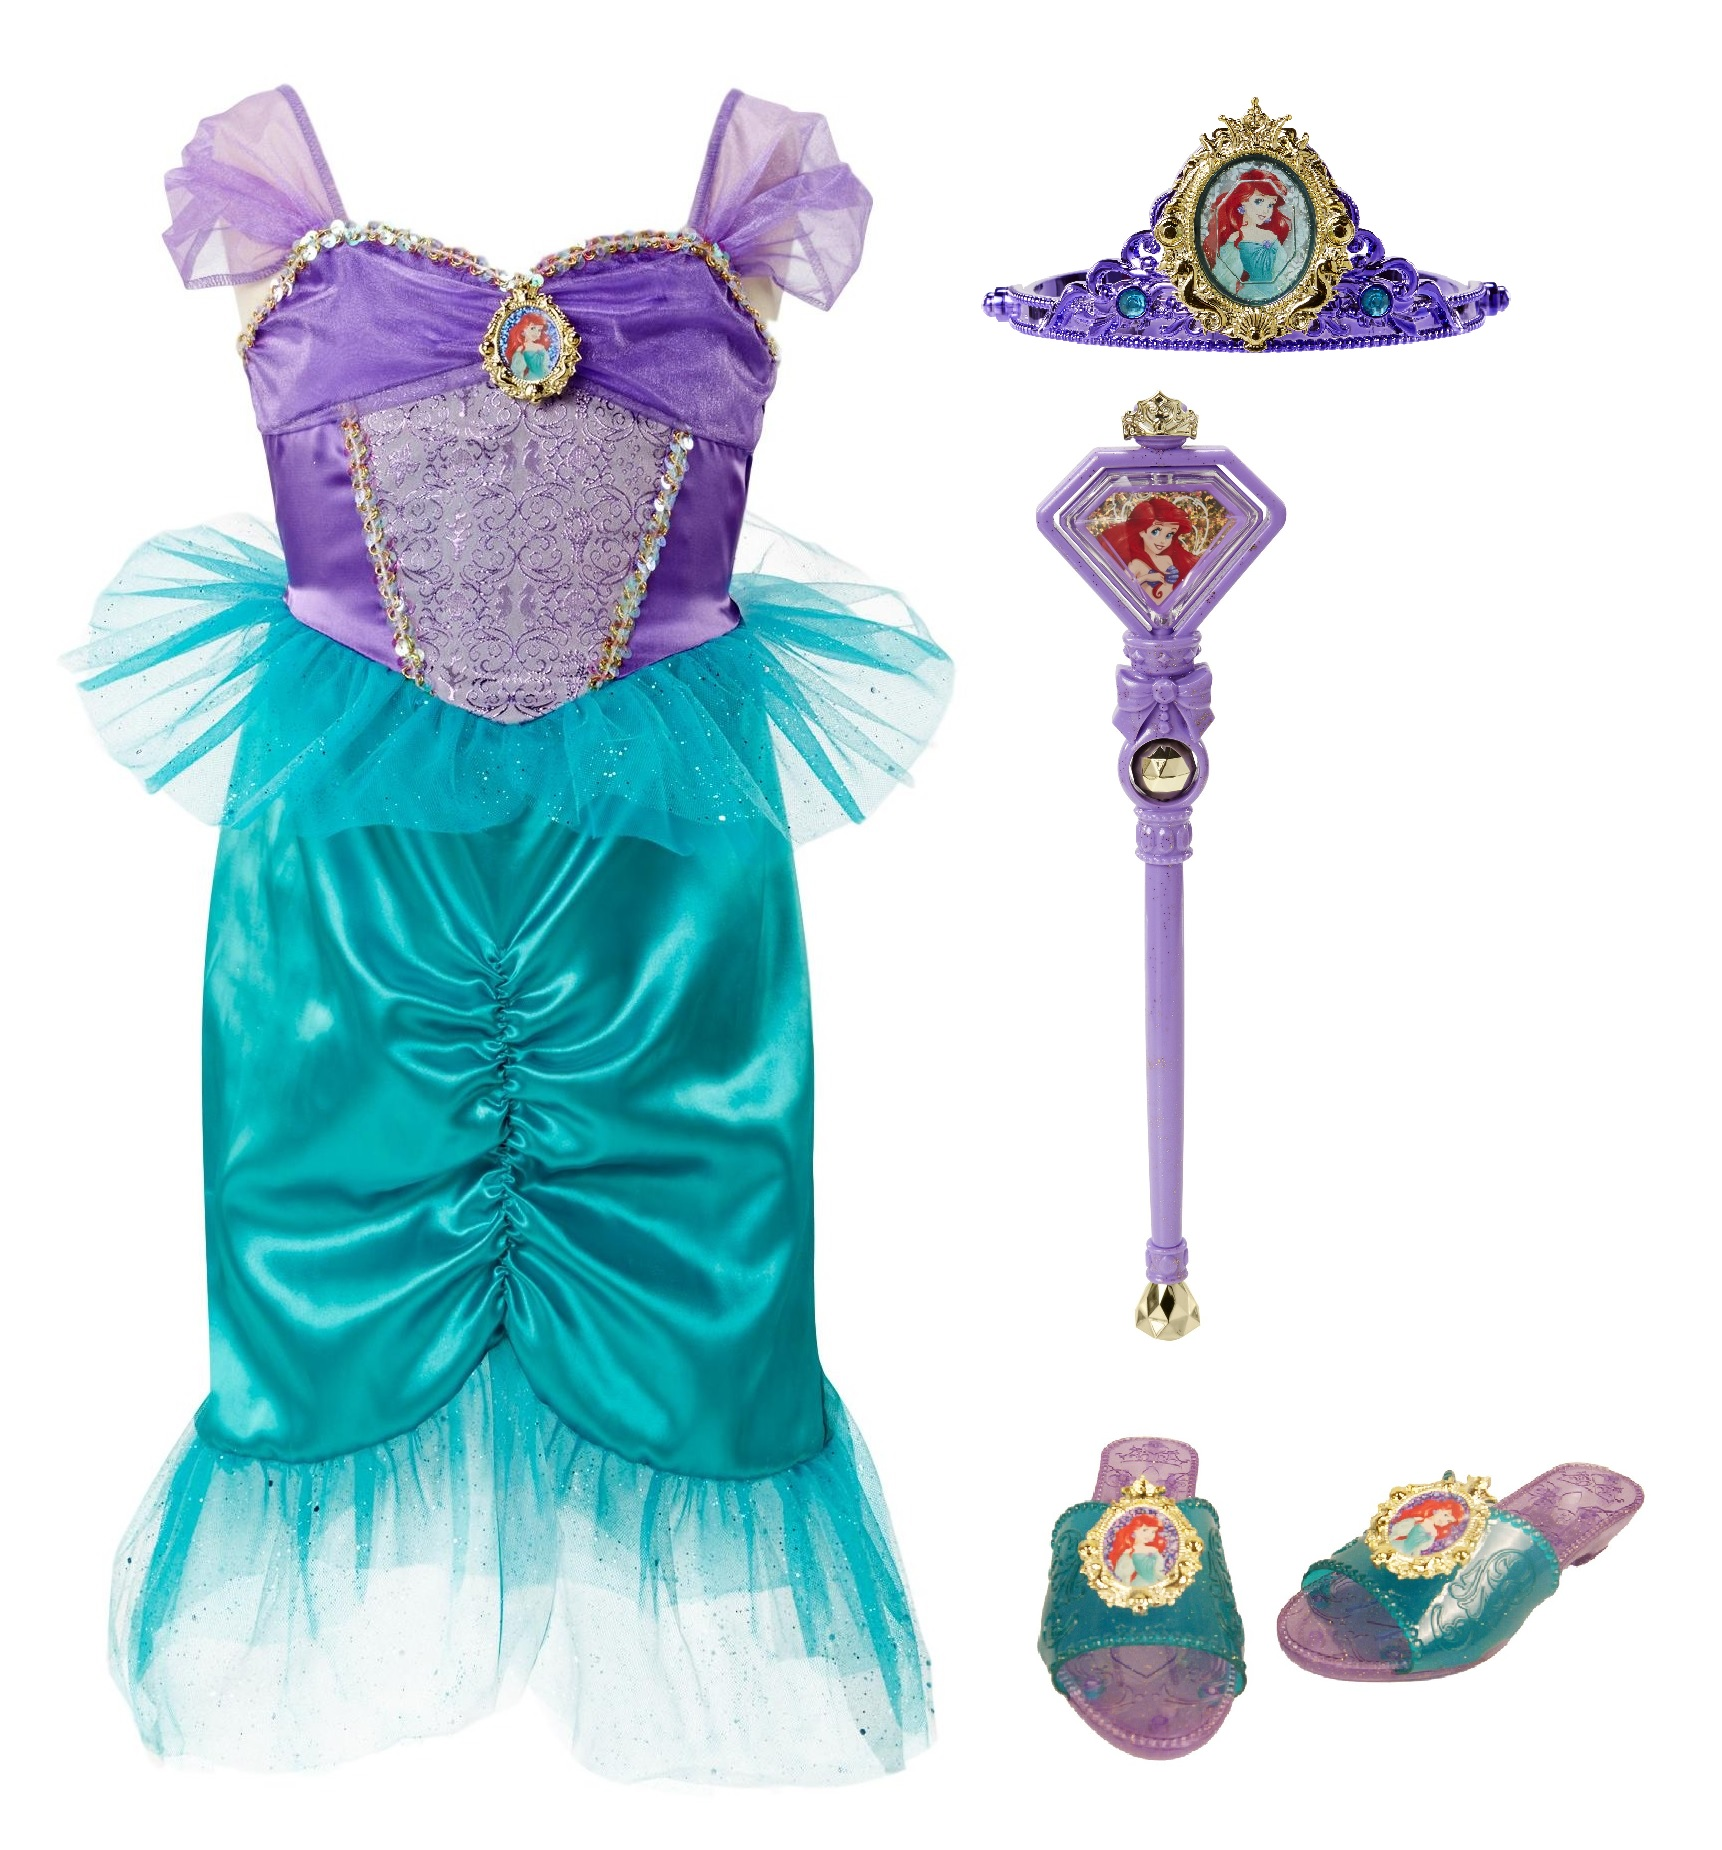 Disney Princess Little Mermaid Ariel Dress Up Costume Set (Size 4-6X)